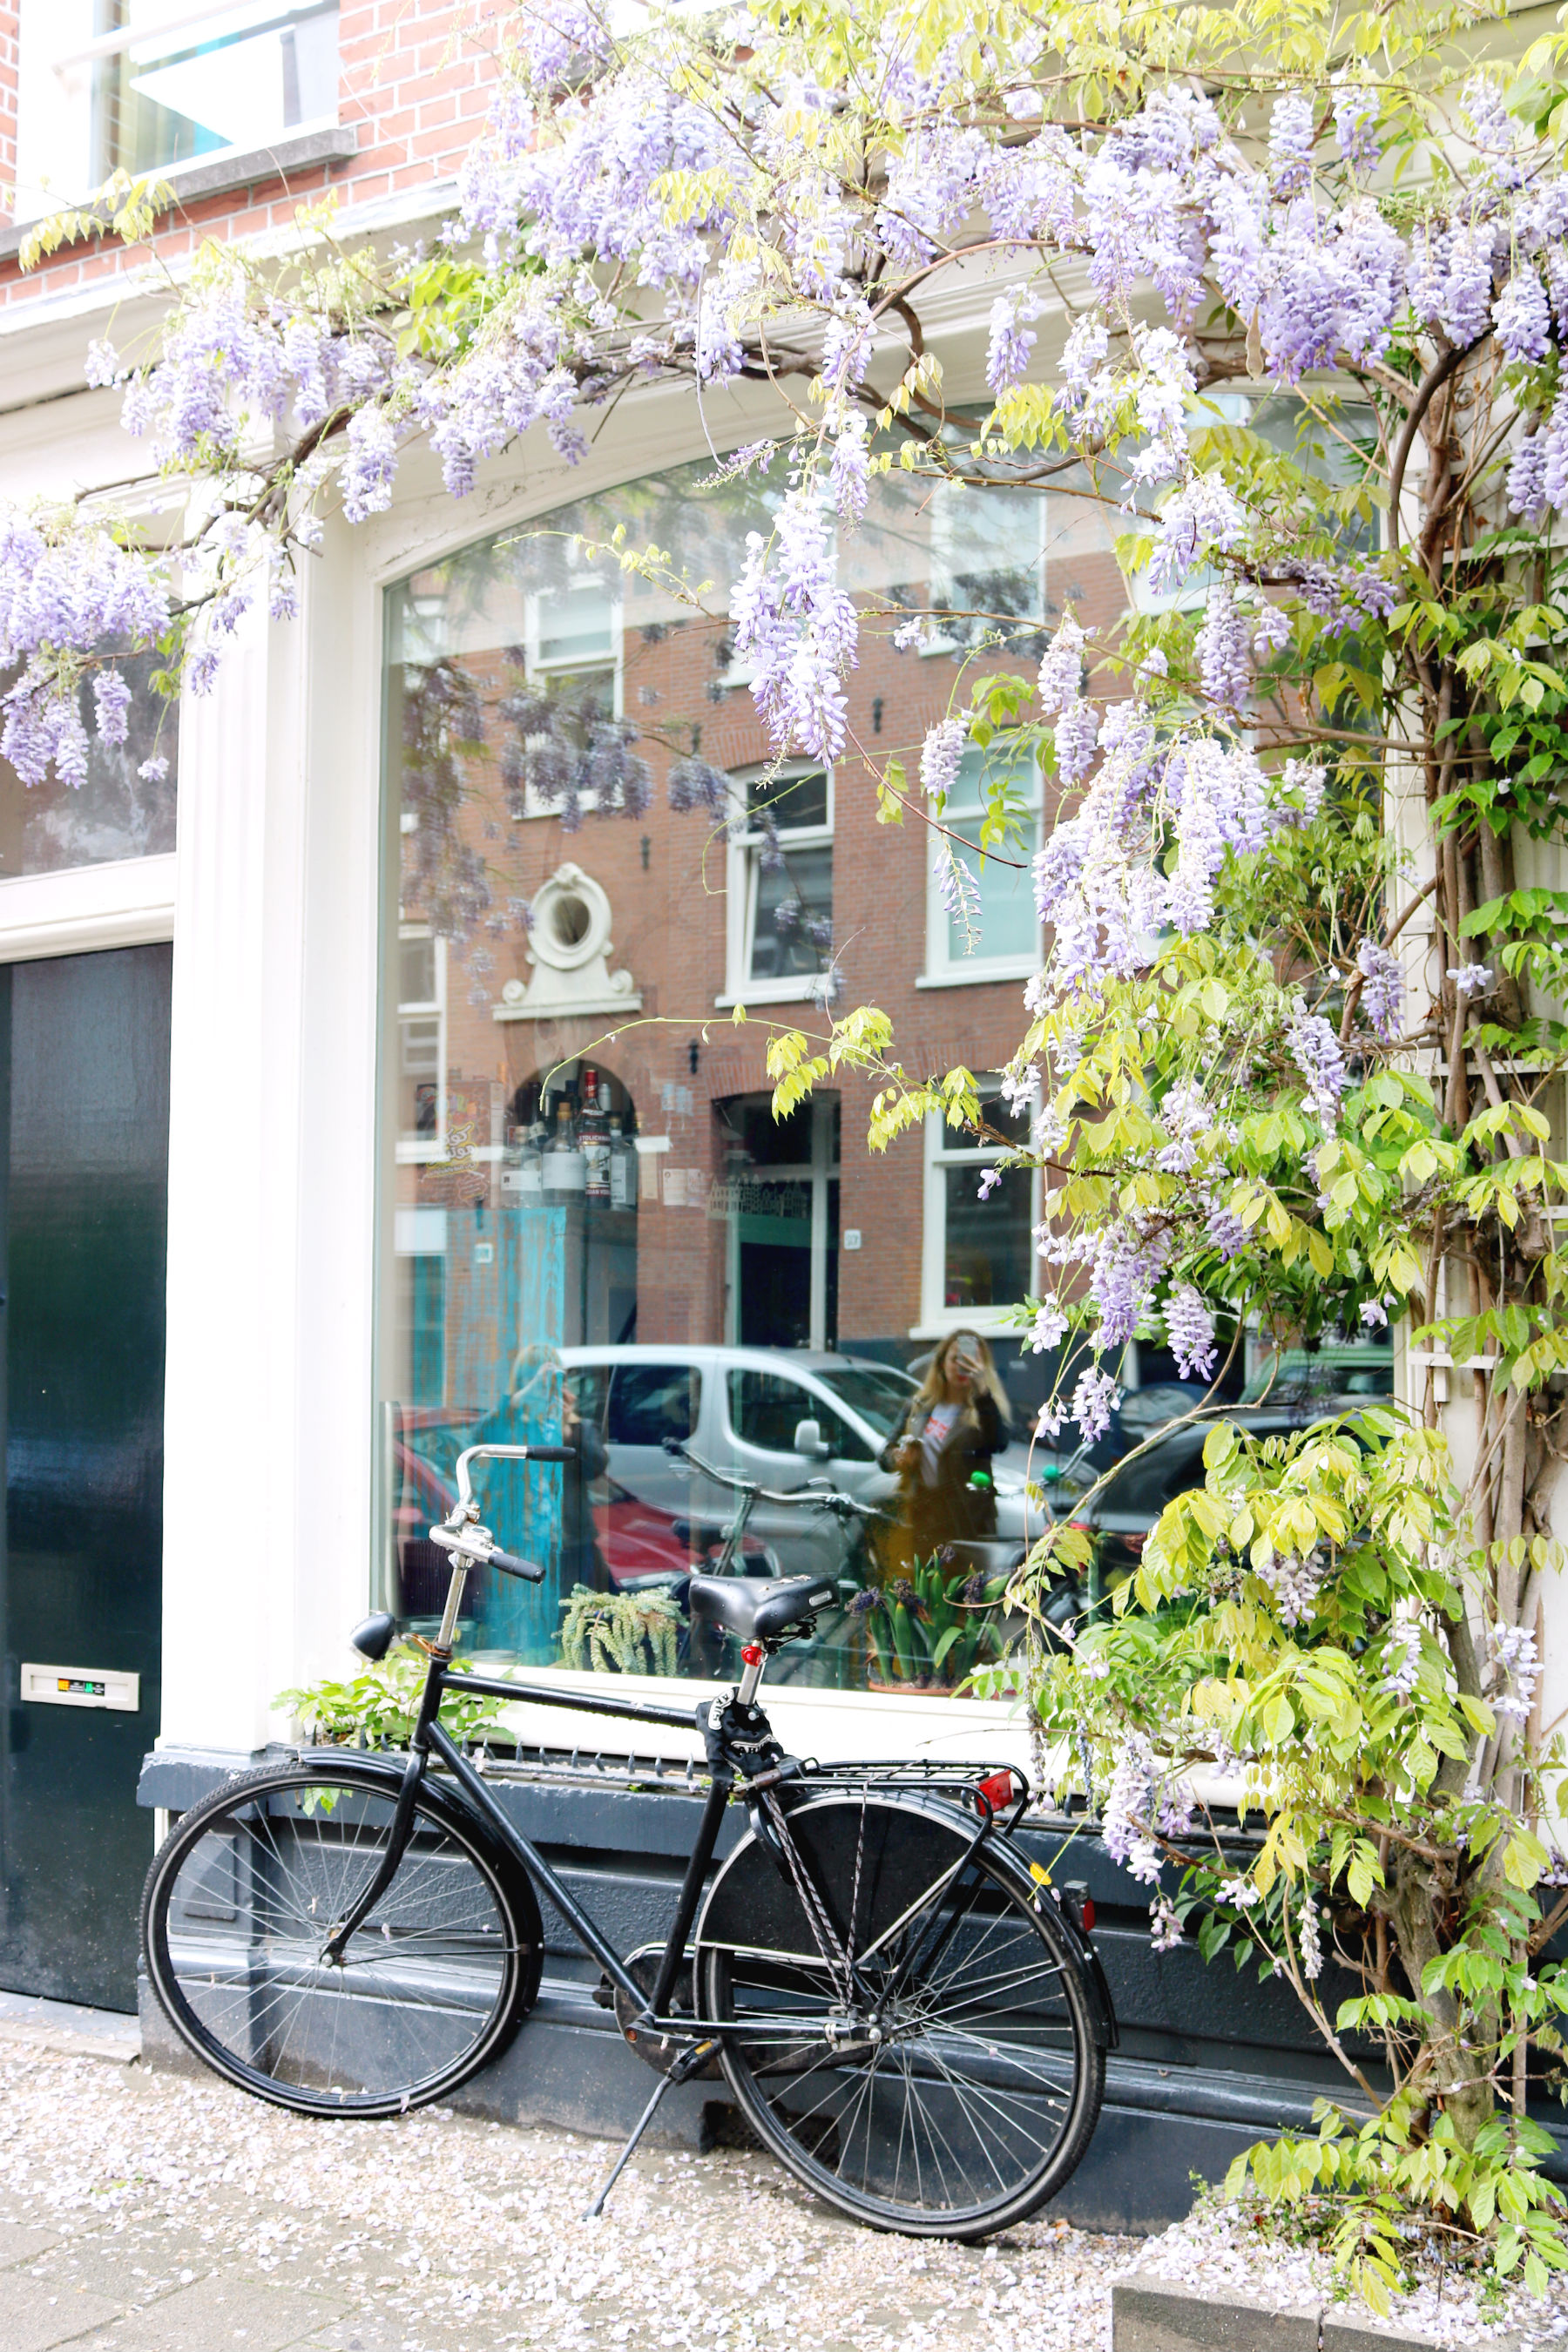 Wisteria hanging over a window in Amsterdam